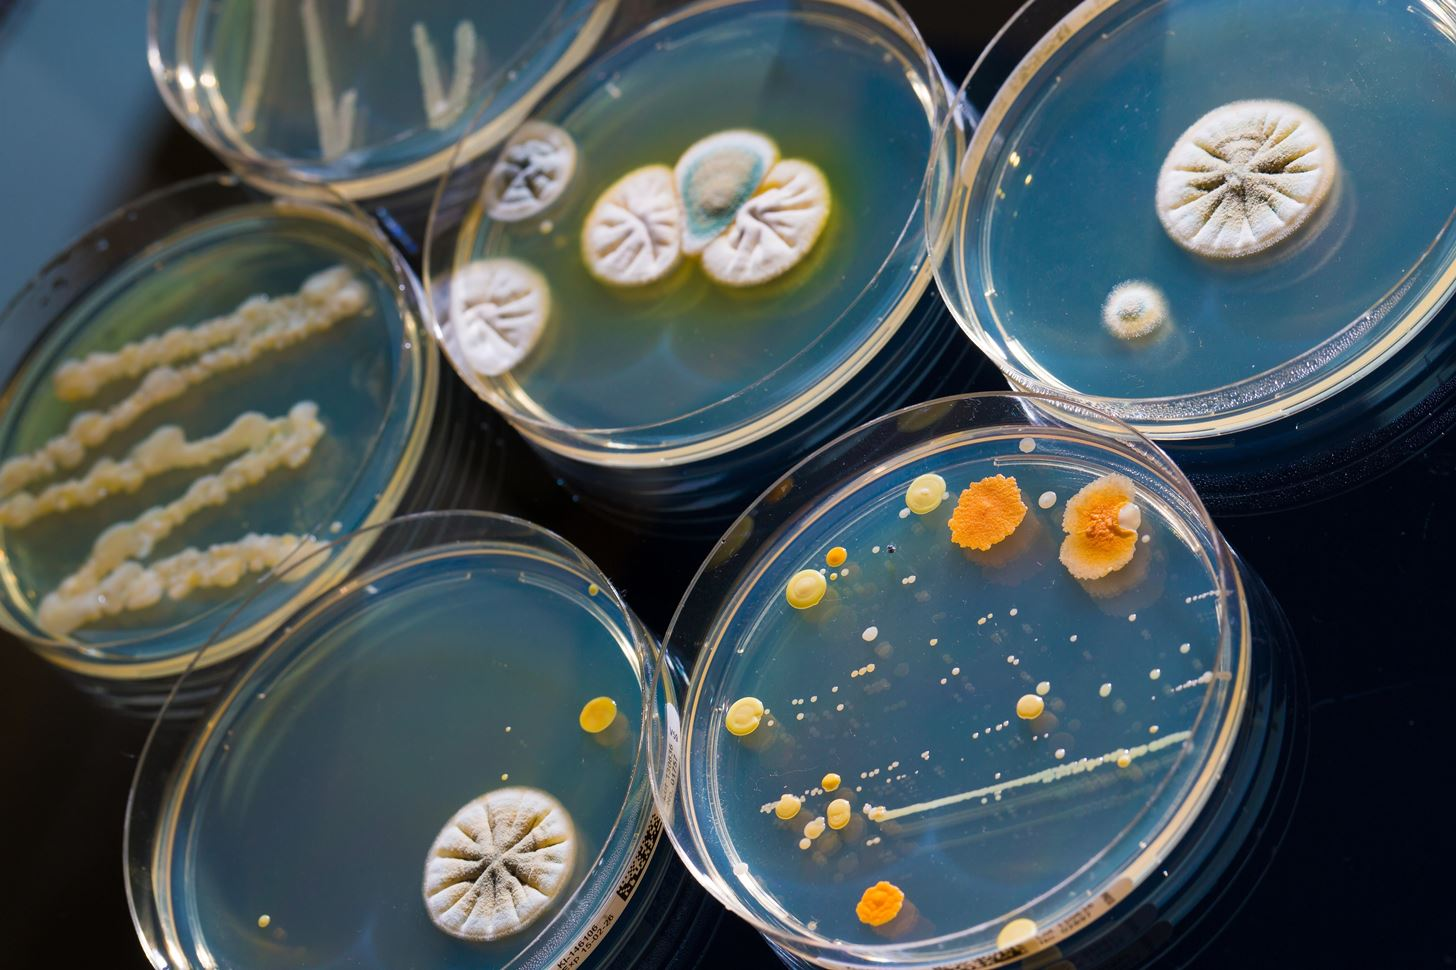 New Study Shows that Superbug E. Coli Gets Stronger & More Dangerous When Doctors Use the Wrong Antibiotics